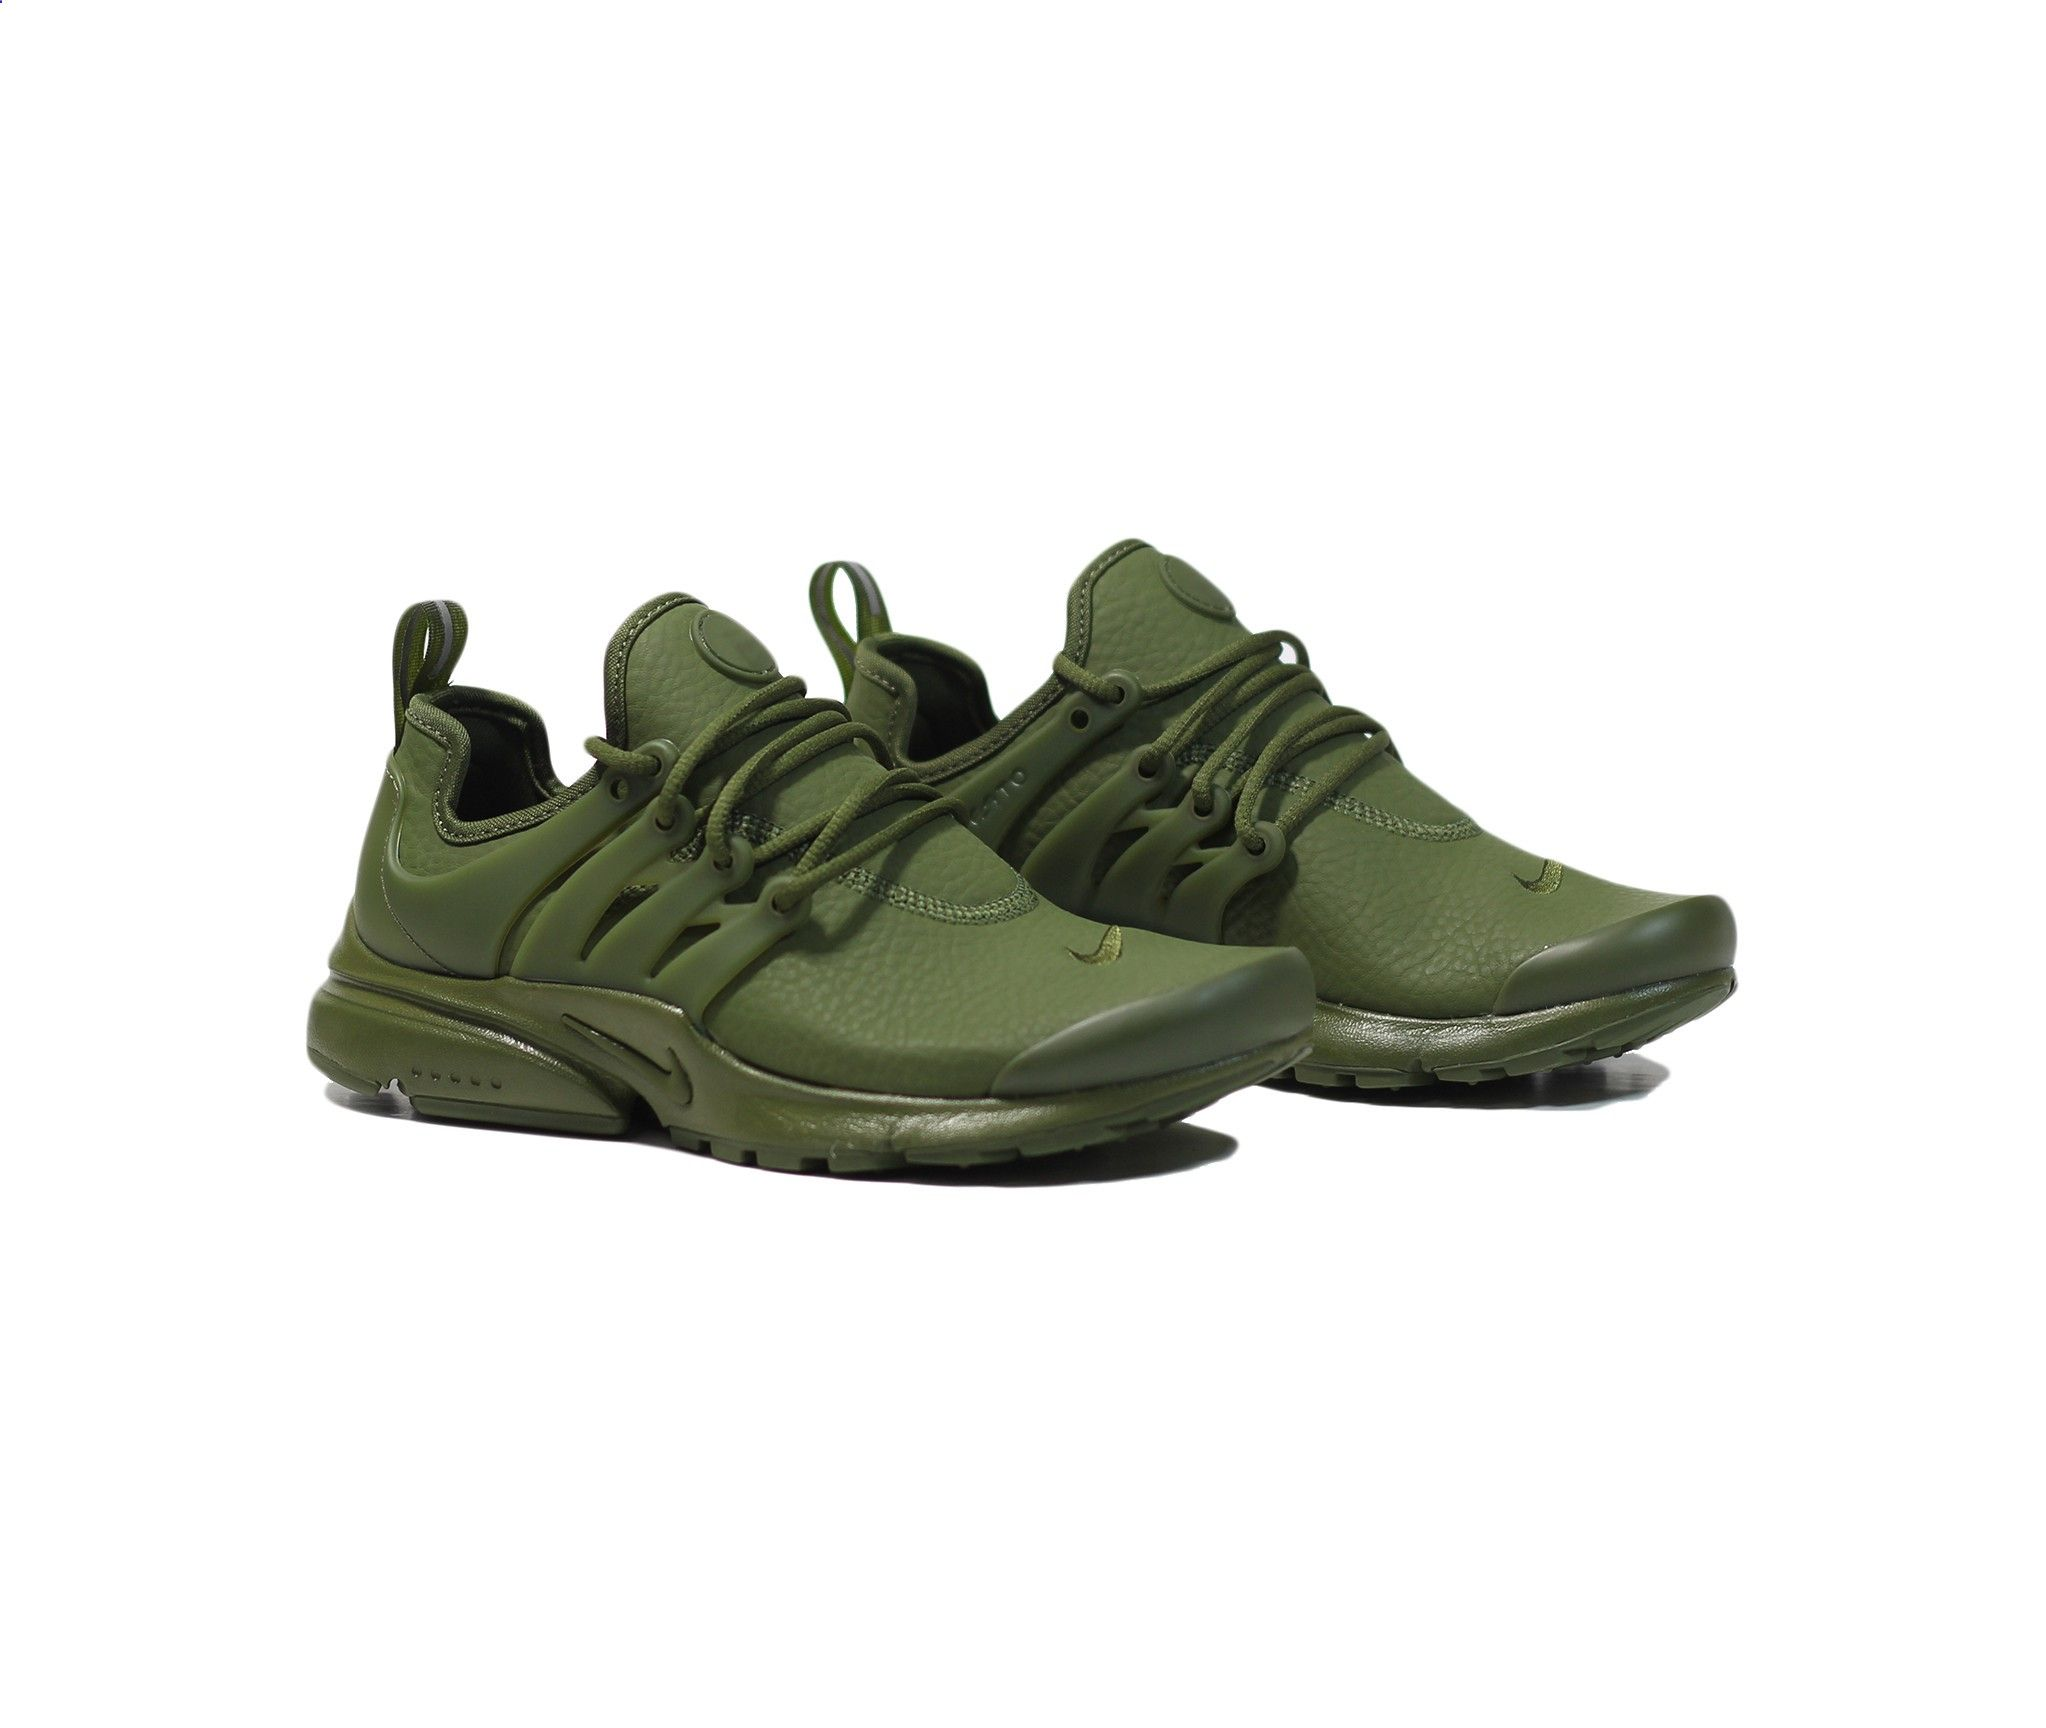 acheter populaire b29d2 61464 Nike Womens Air Presto PRM - Legion Green/Black | Shoe Game ...